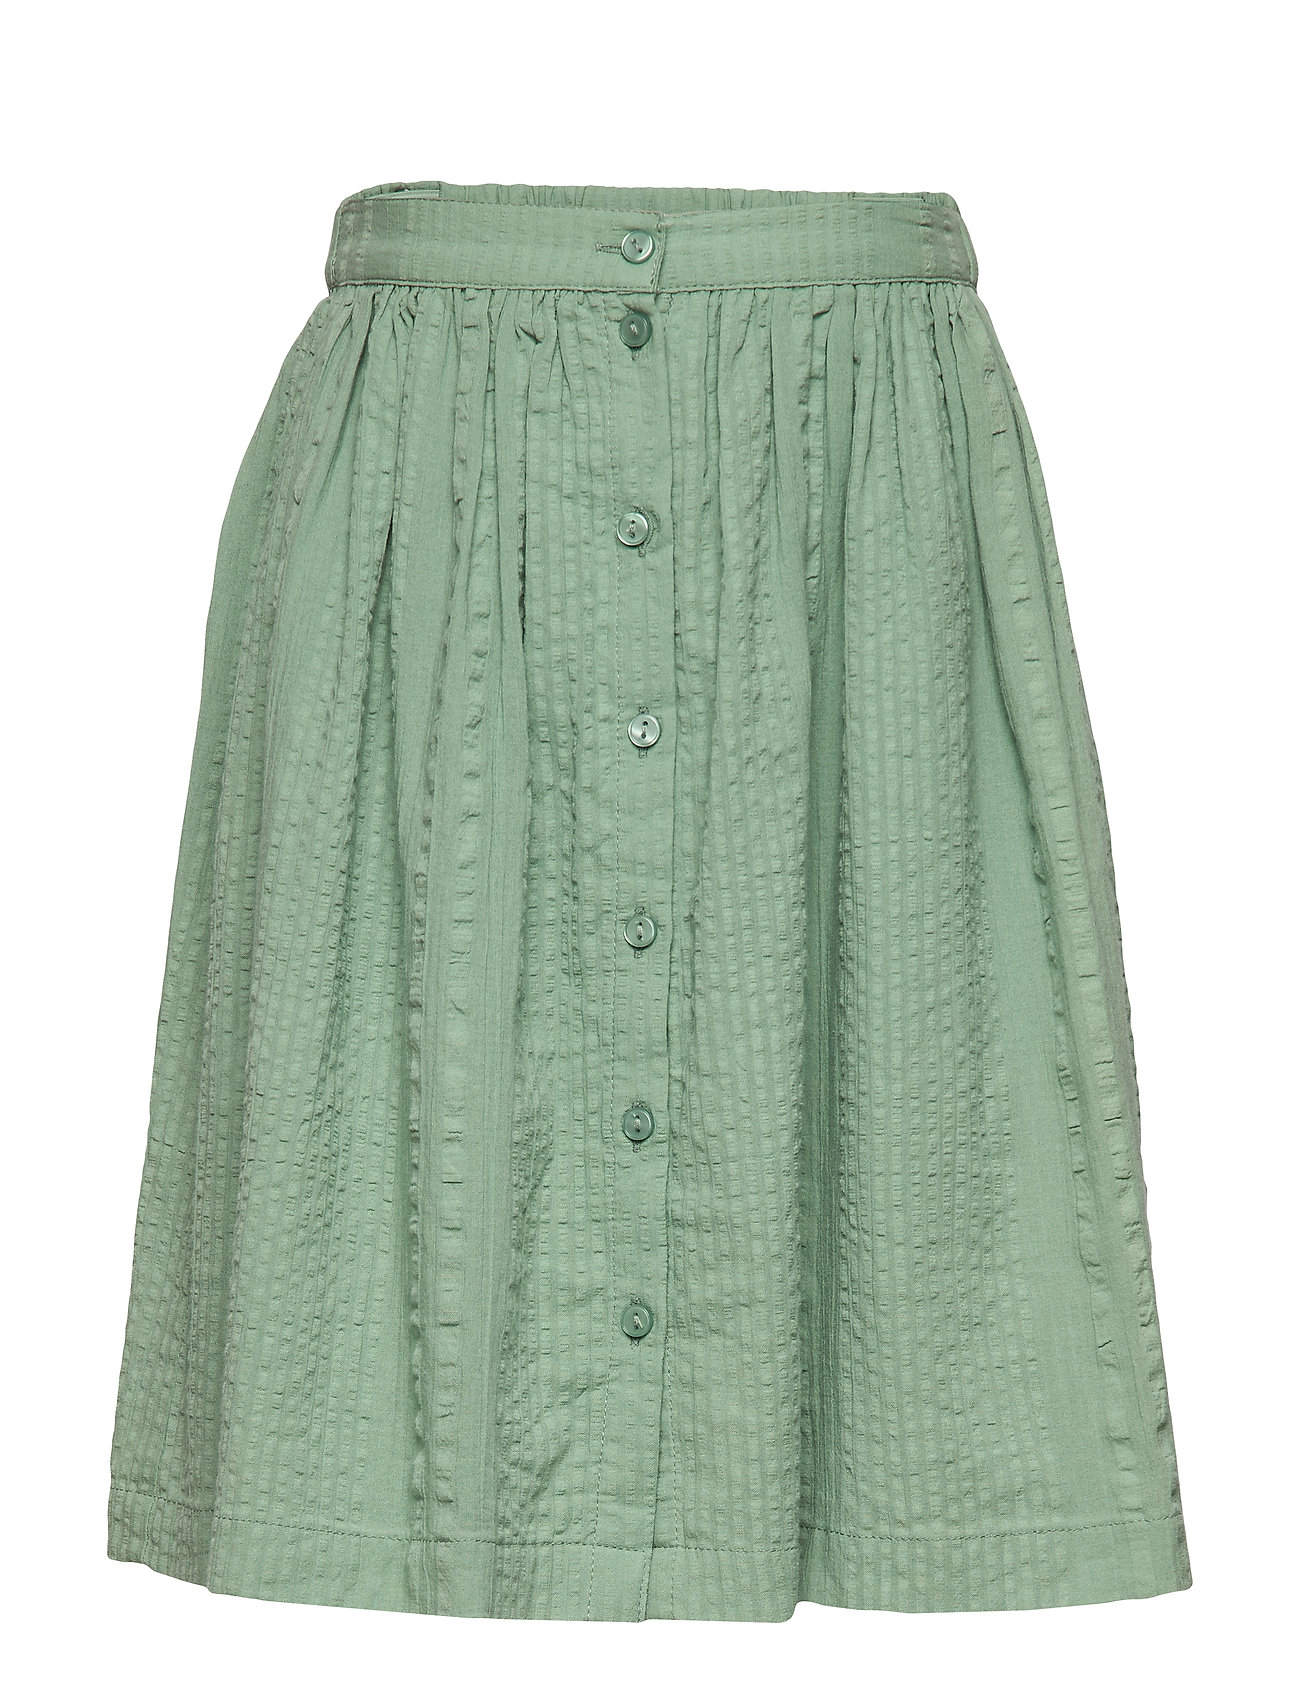 Soft Gallery Dixie Skirt - BASIL